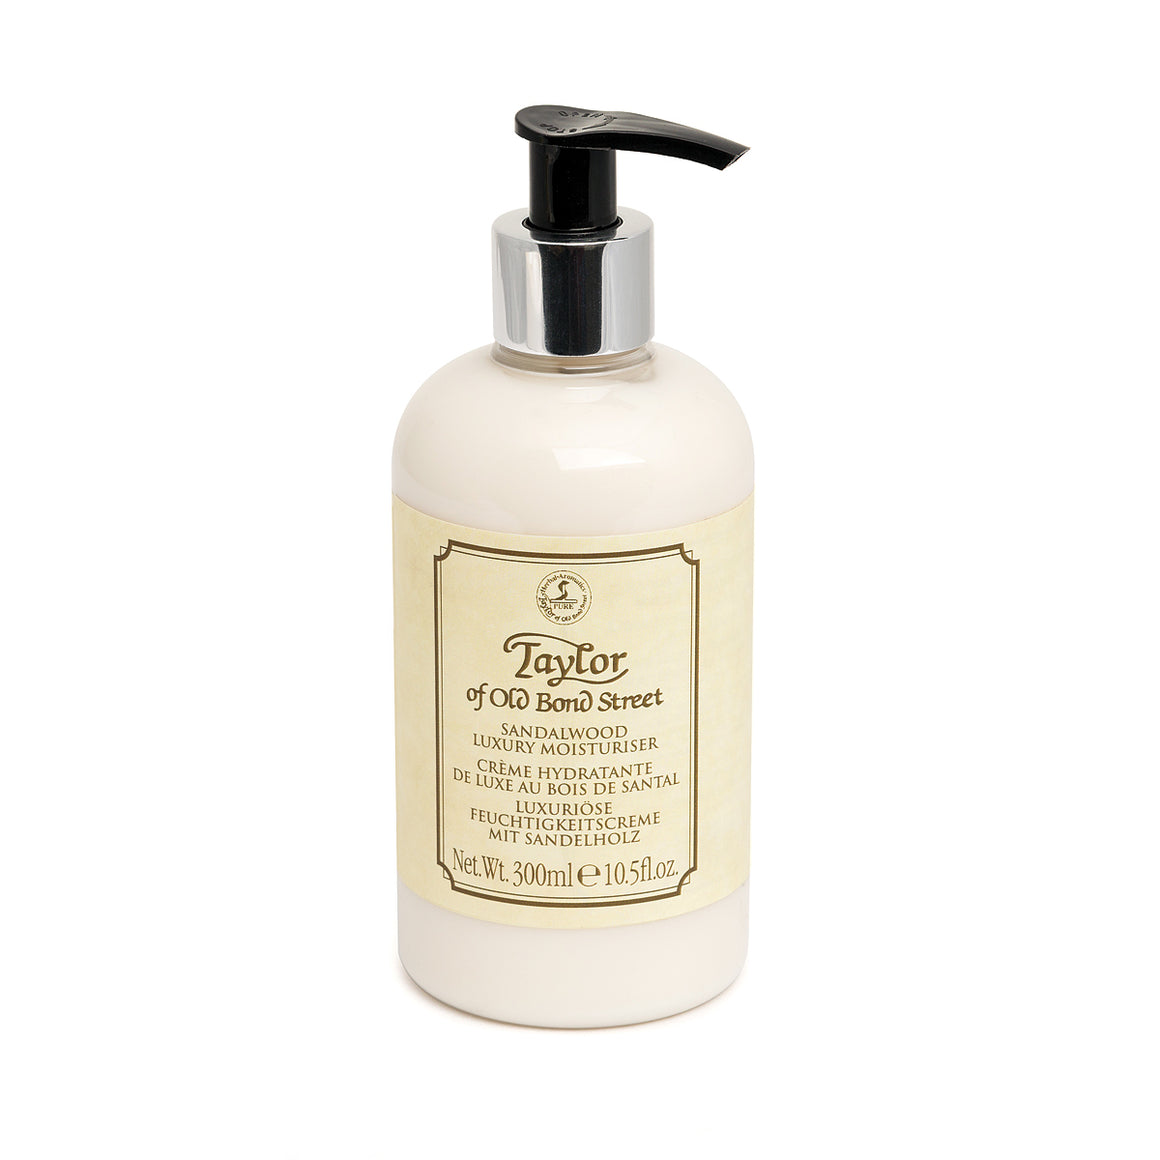 Taylor of Old Bond Street Sandalwood Moisturiser 300ml